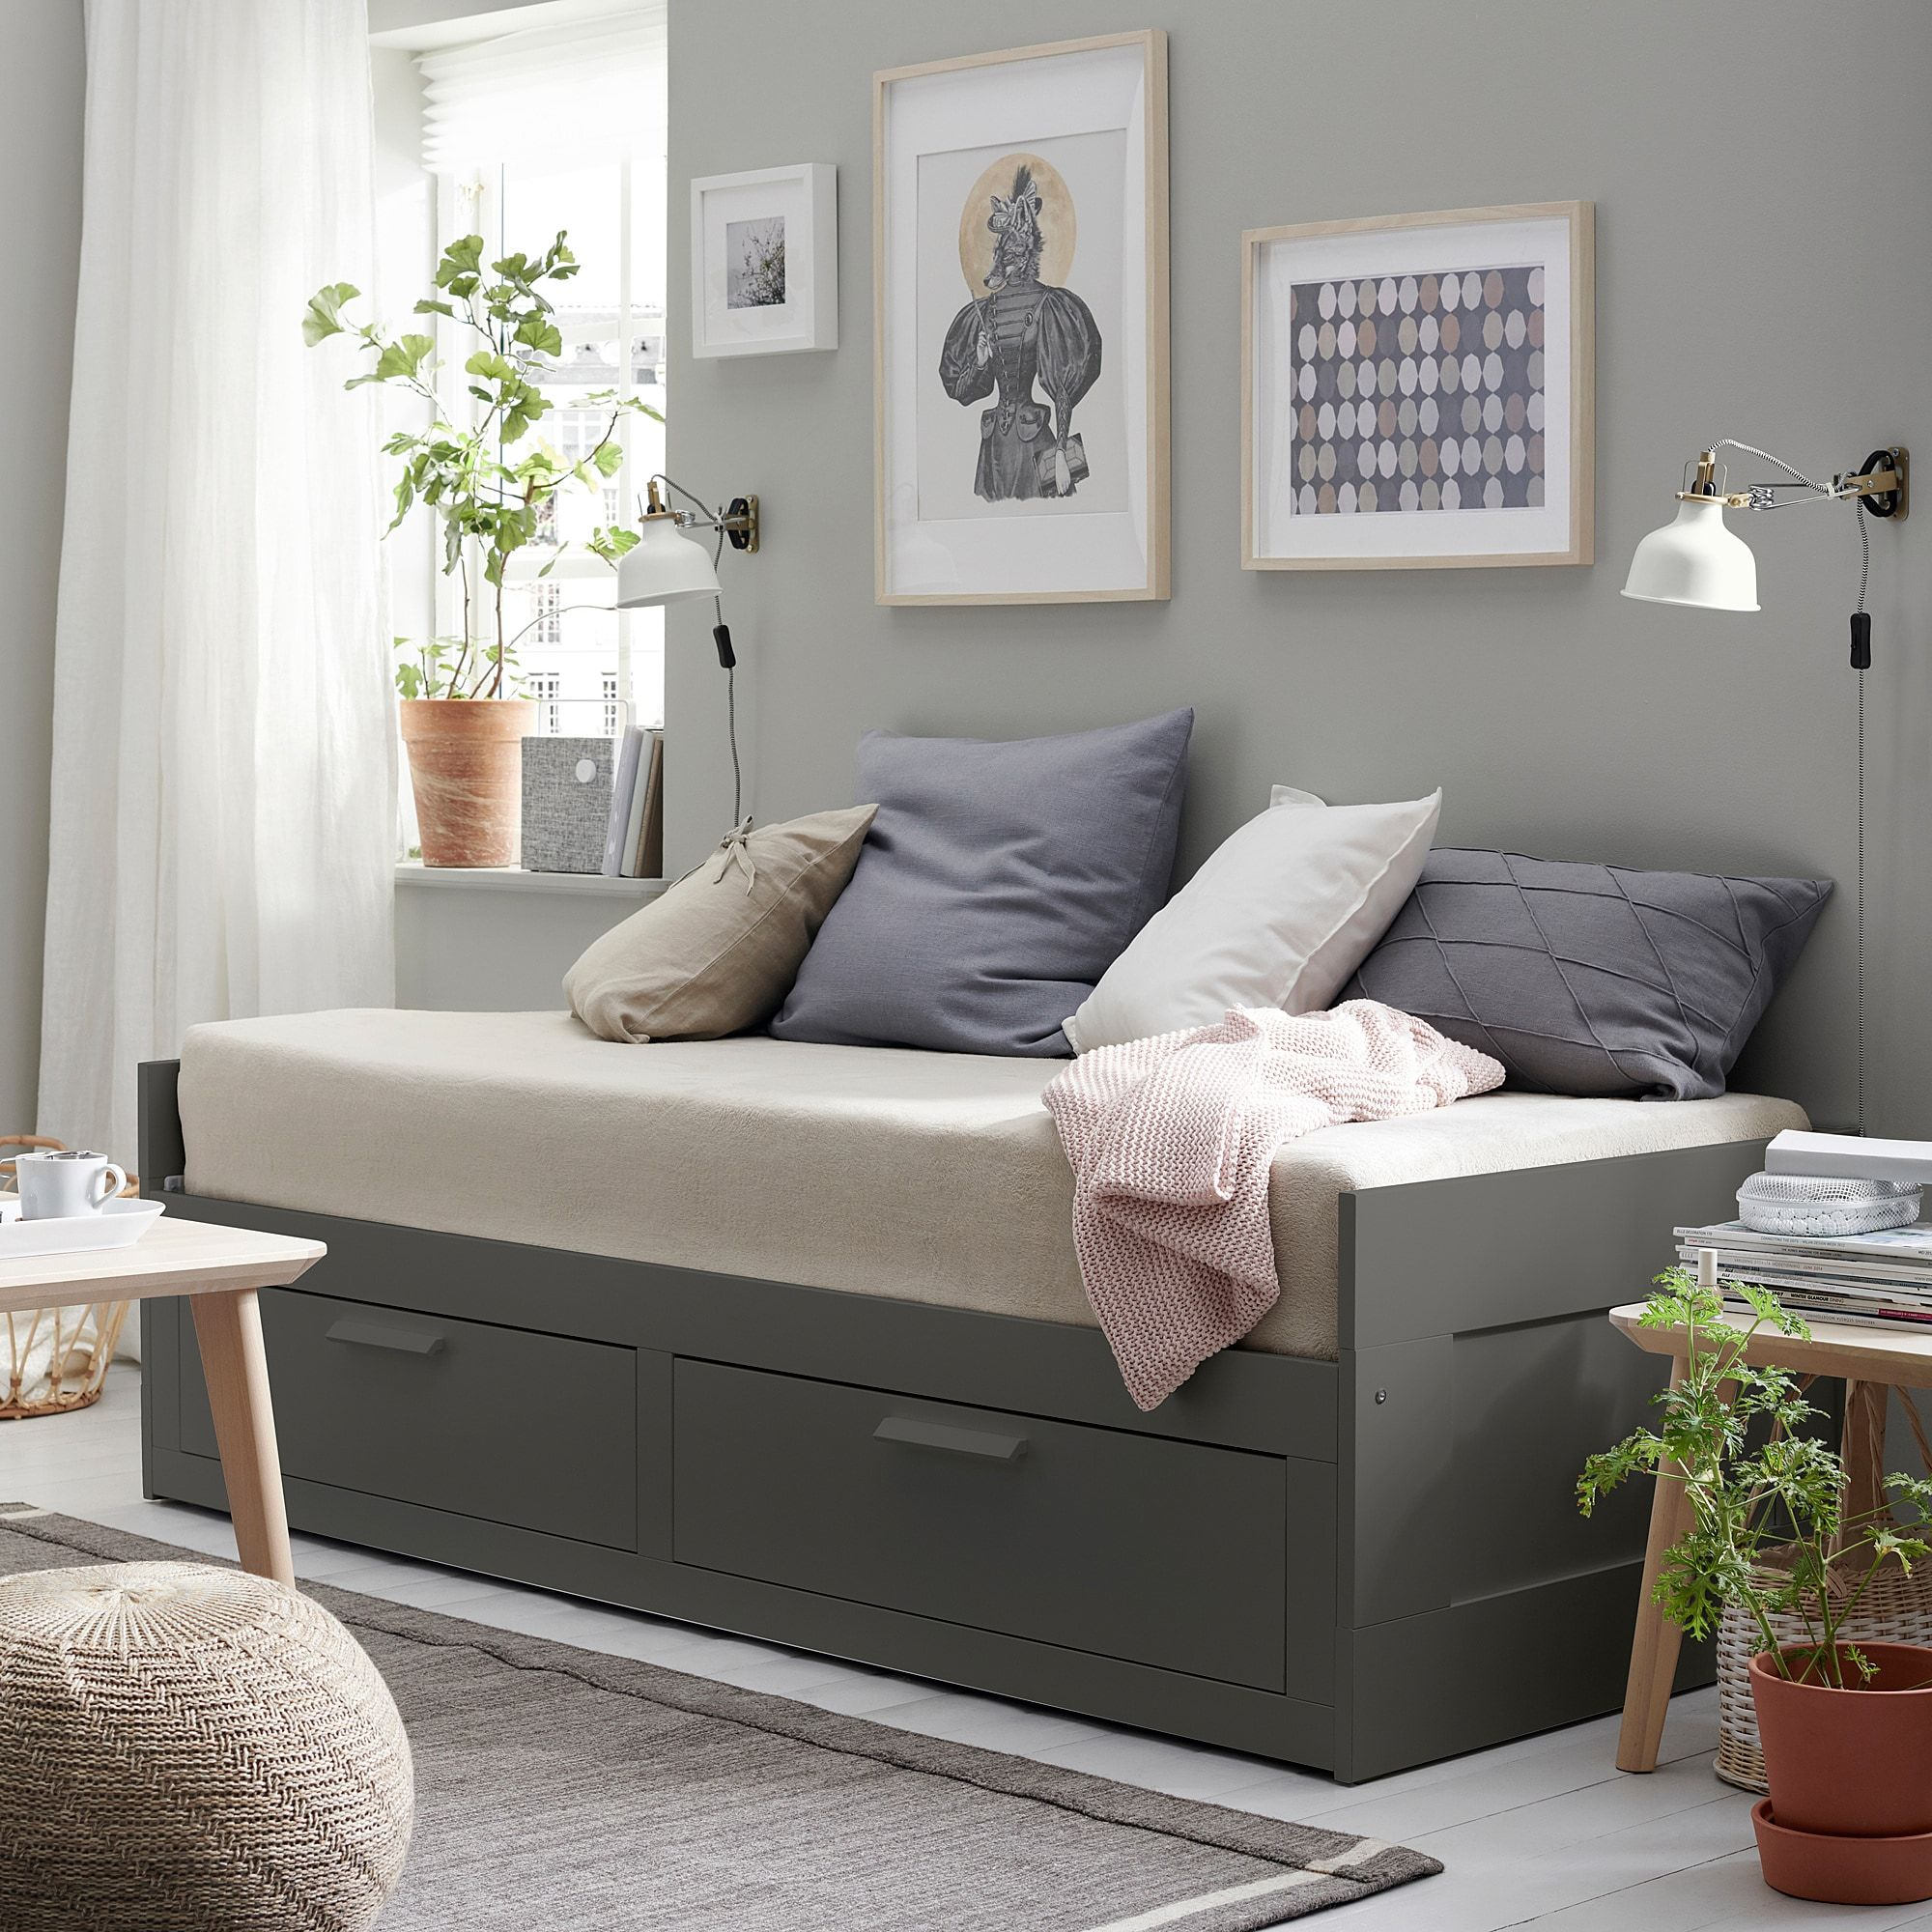 BRIMNES Daybed frame with 2 drawers, gray IKEA in 2020